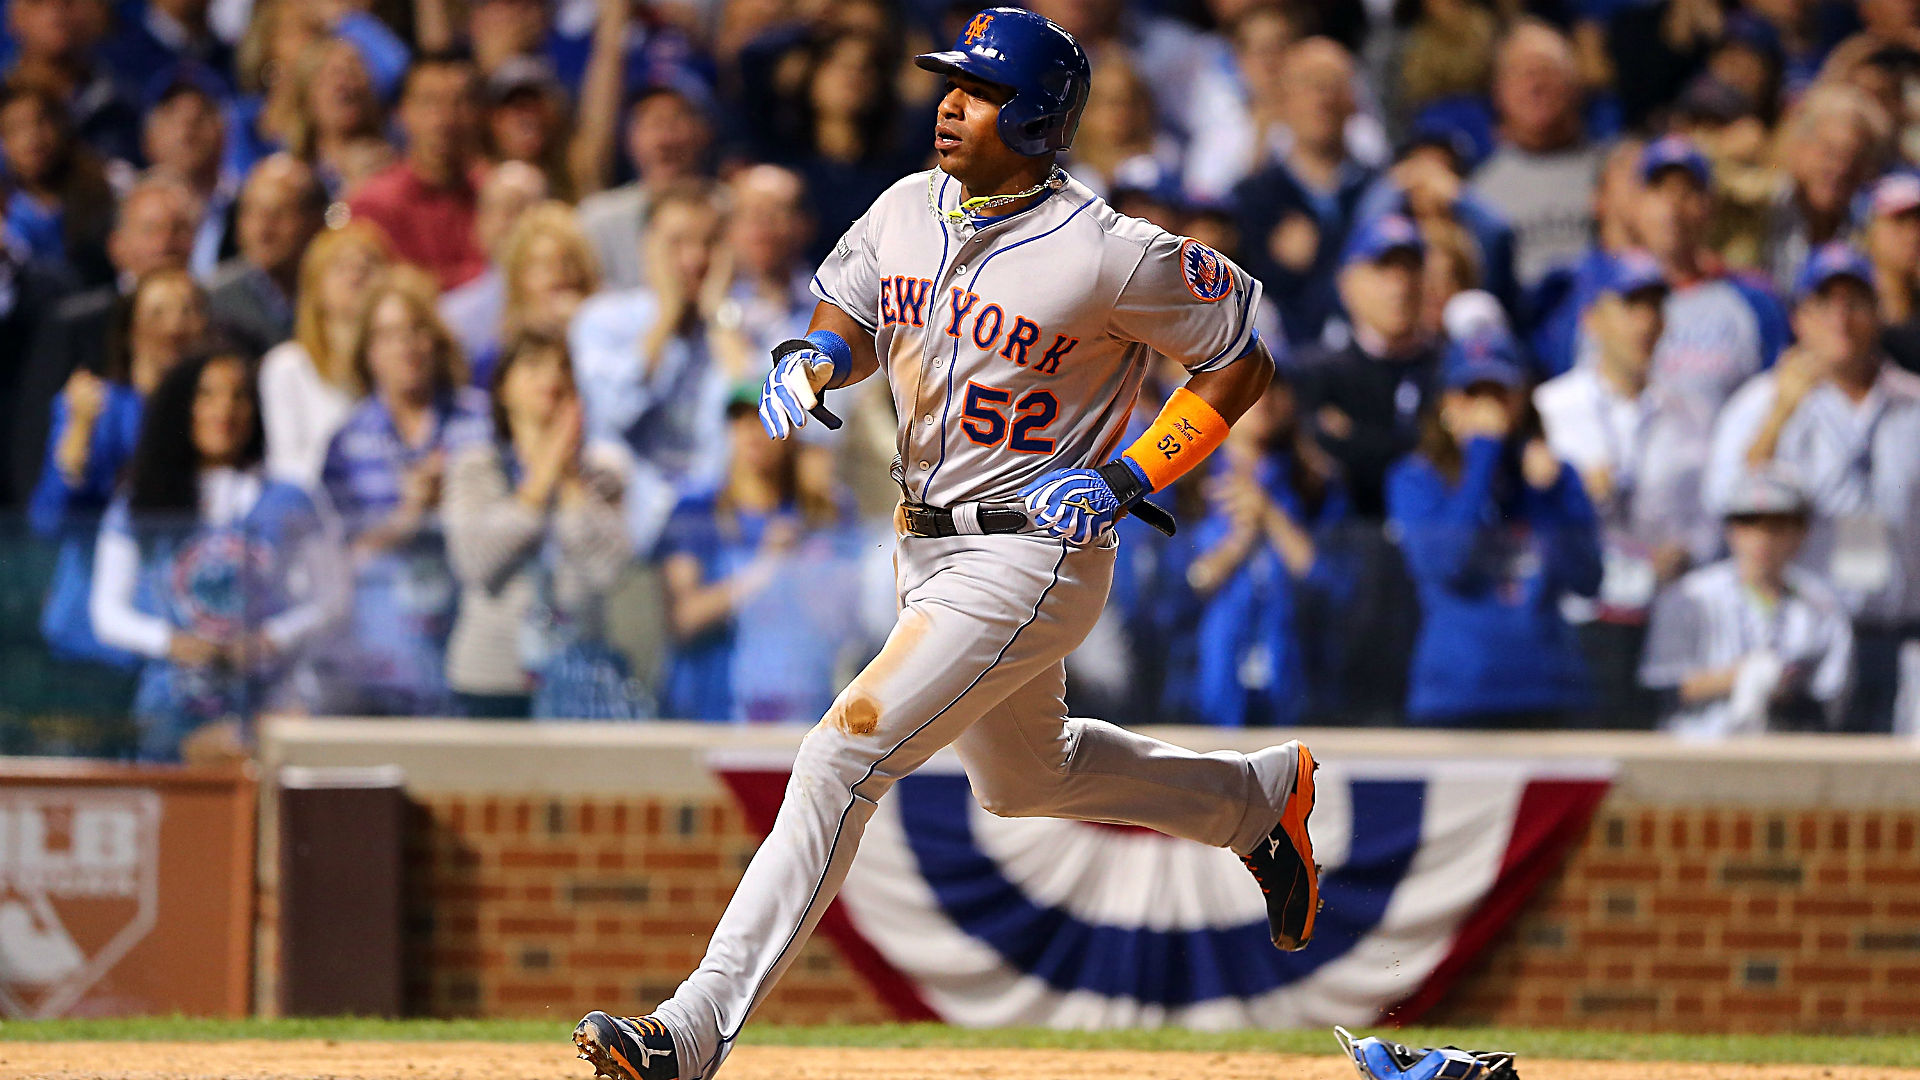 Yoenis-Cespedes-run-102115-Getty-FTR.jpg